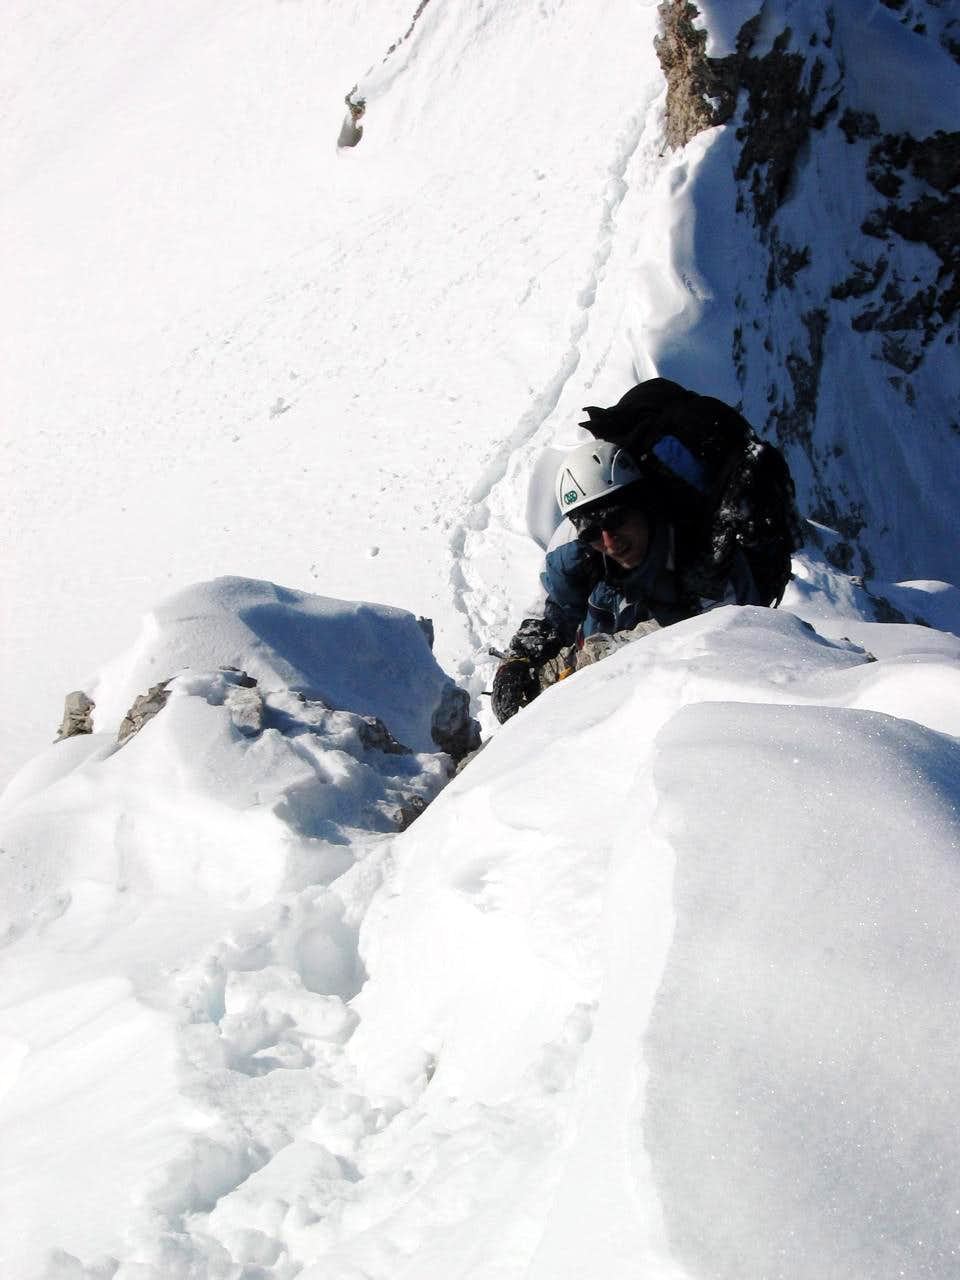 Jubiläumsgrat in Winter: Full body climbing